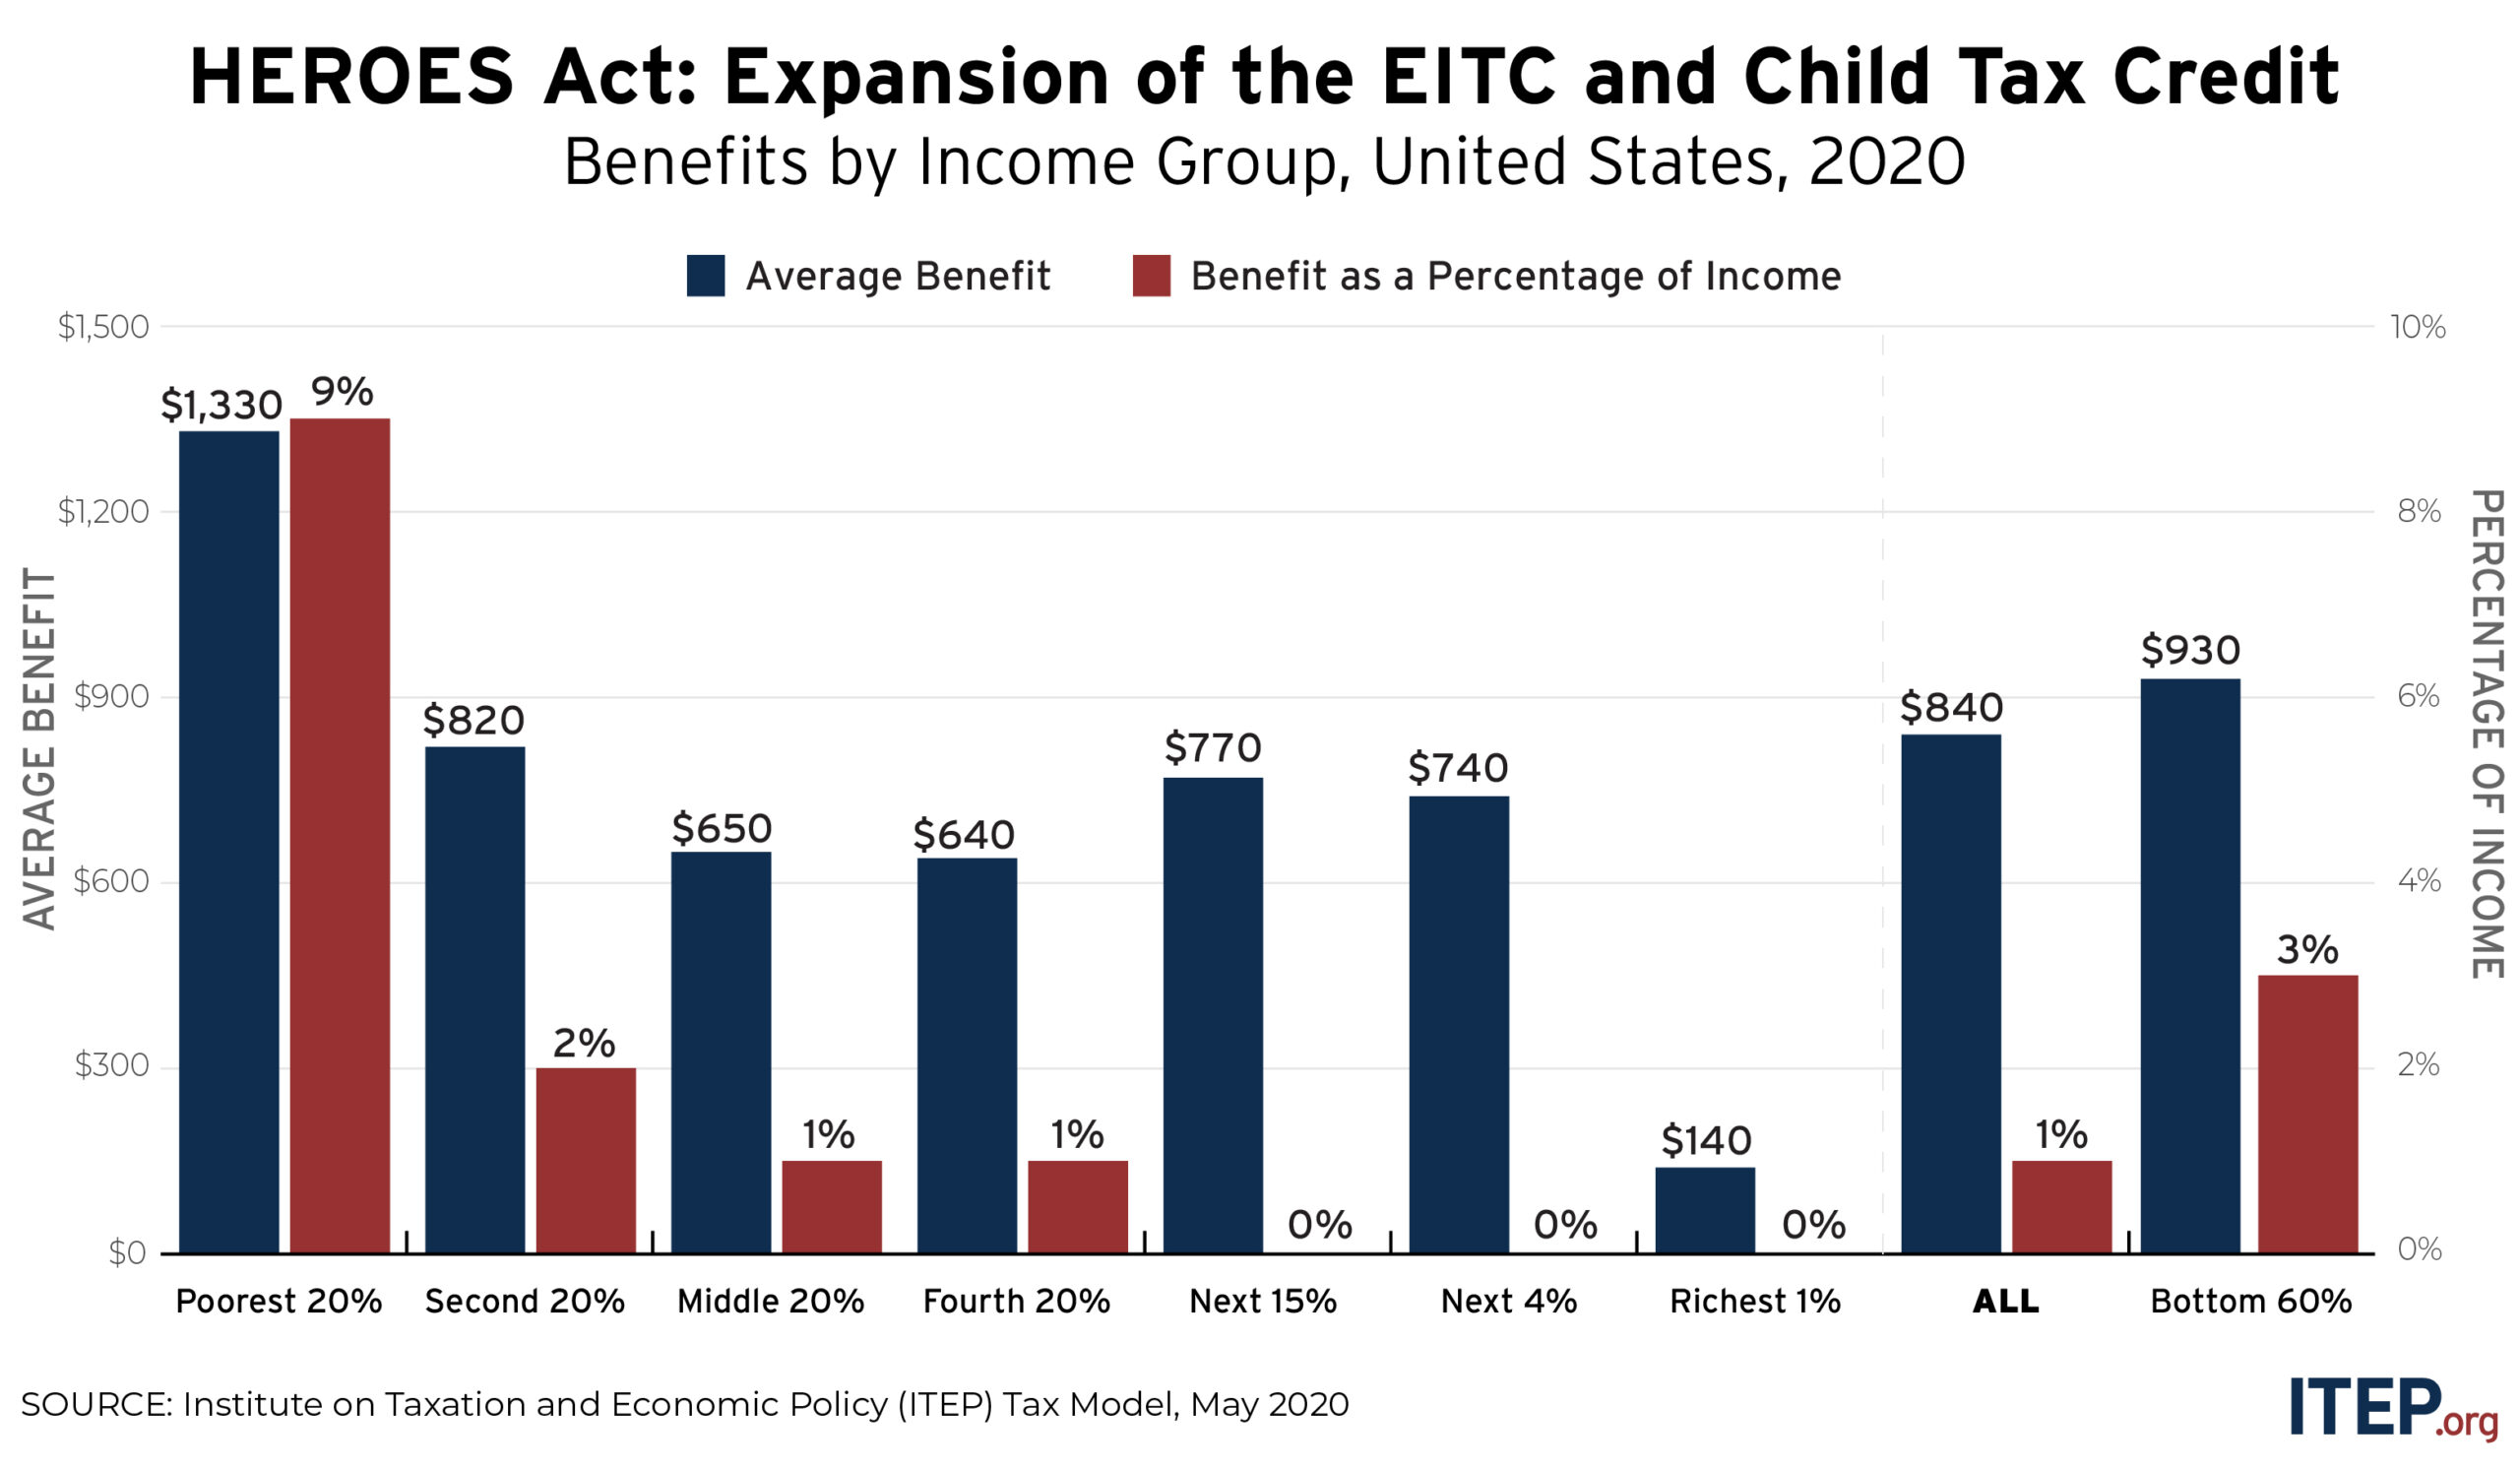 National and State-by-State Estimates of House-Passed Improvements in Tax Credits for Workers and Children